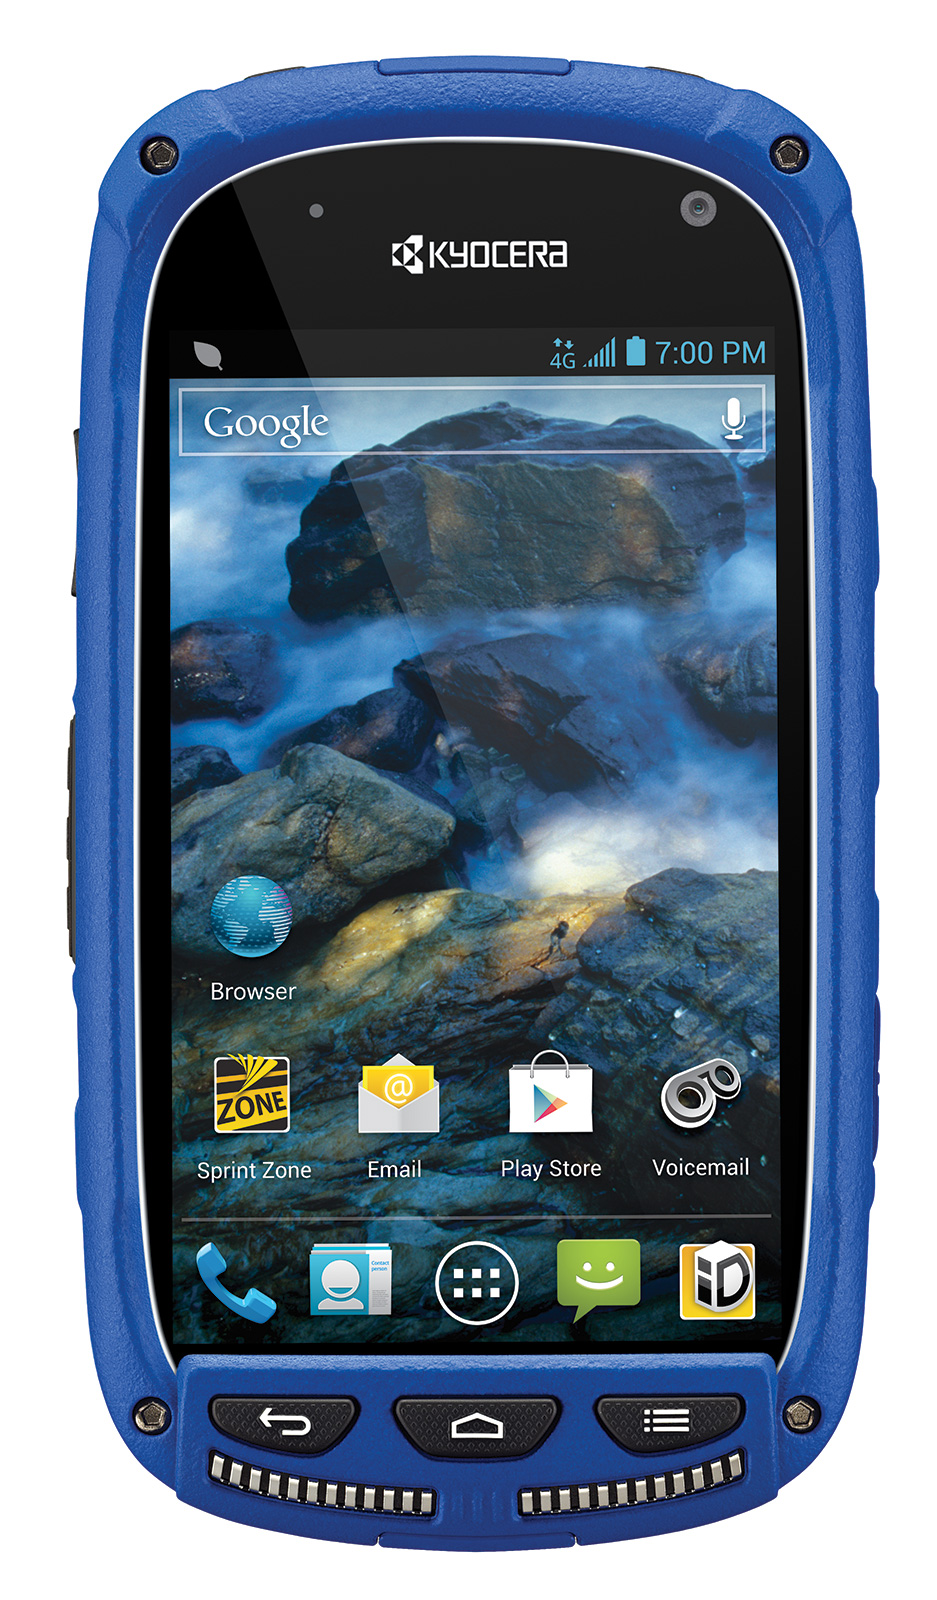 Kyocera Torque Rugged Android Smartphone For Sprint Blue